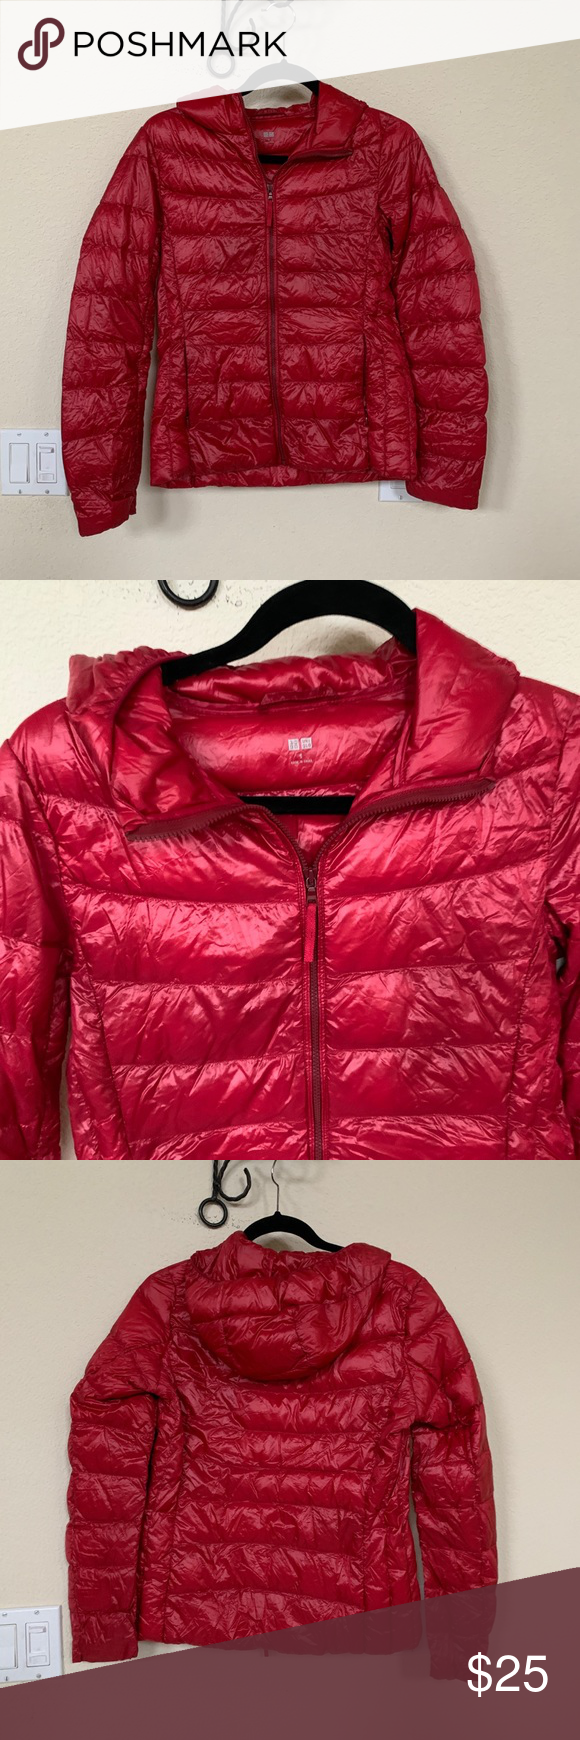 Uniqlo cranberry down red puffer coat jacket s Red